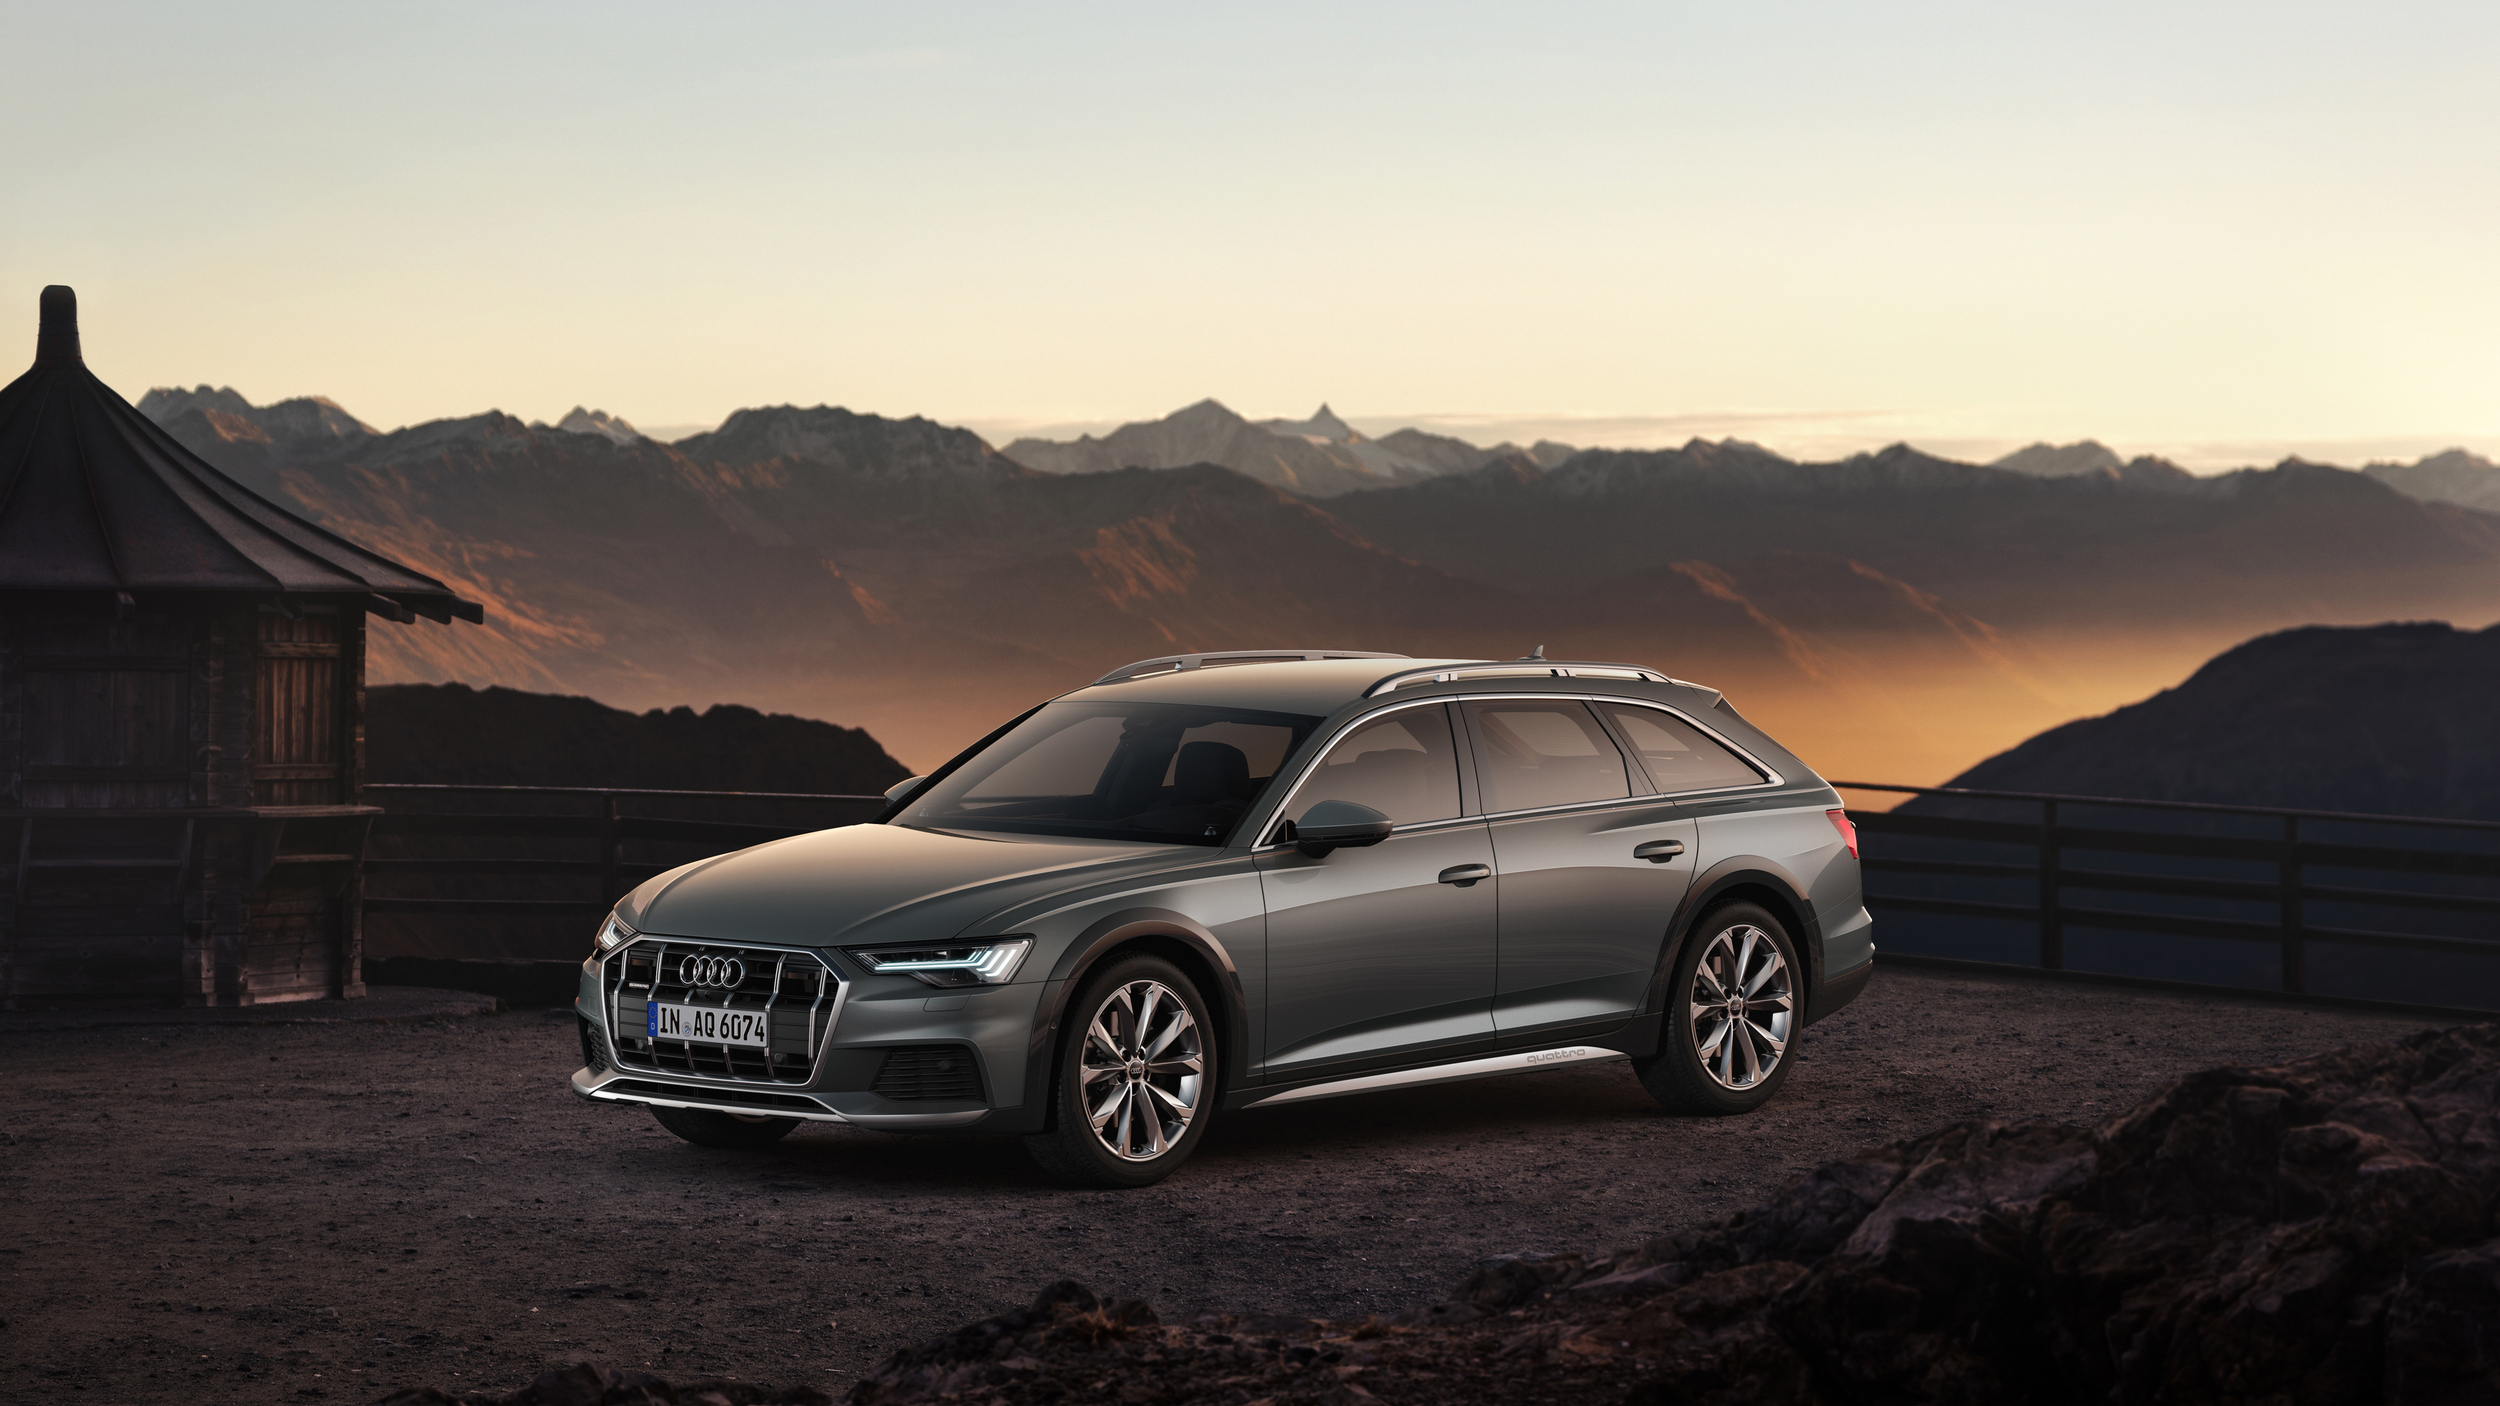 Pre Owned Audi >> 2020 Auto A6 Allroad marks 20th anniversary of the rugged wagon | Autoblog